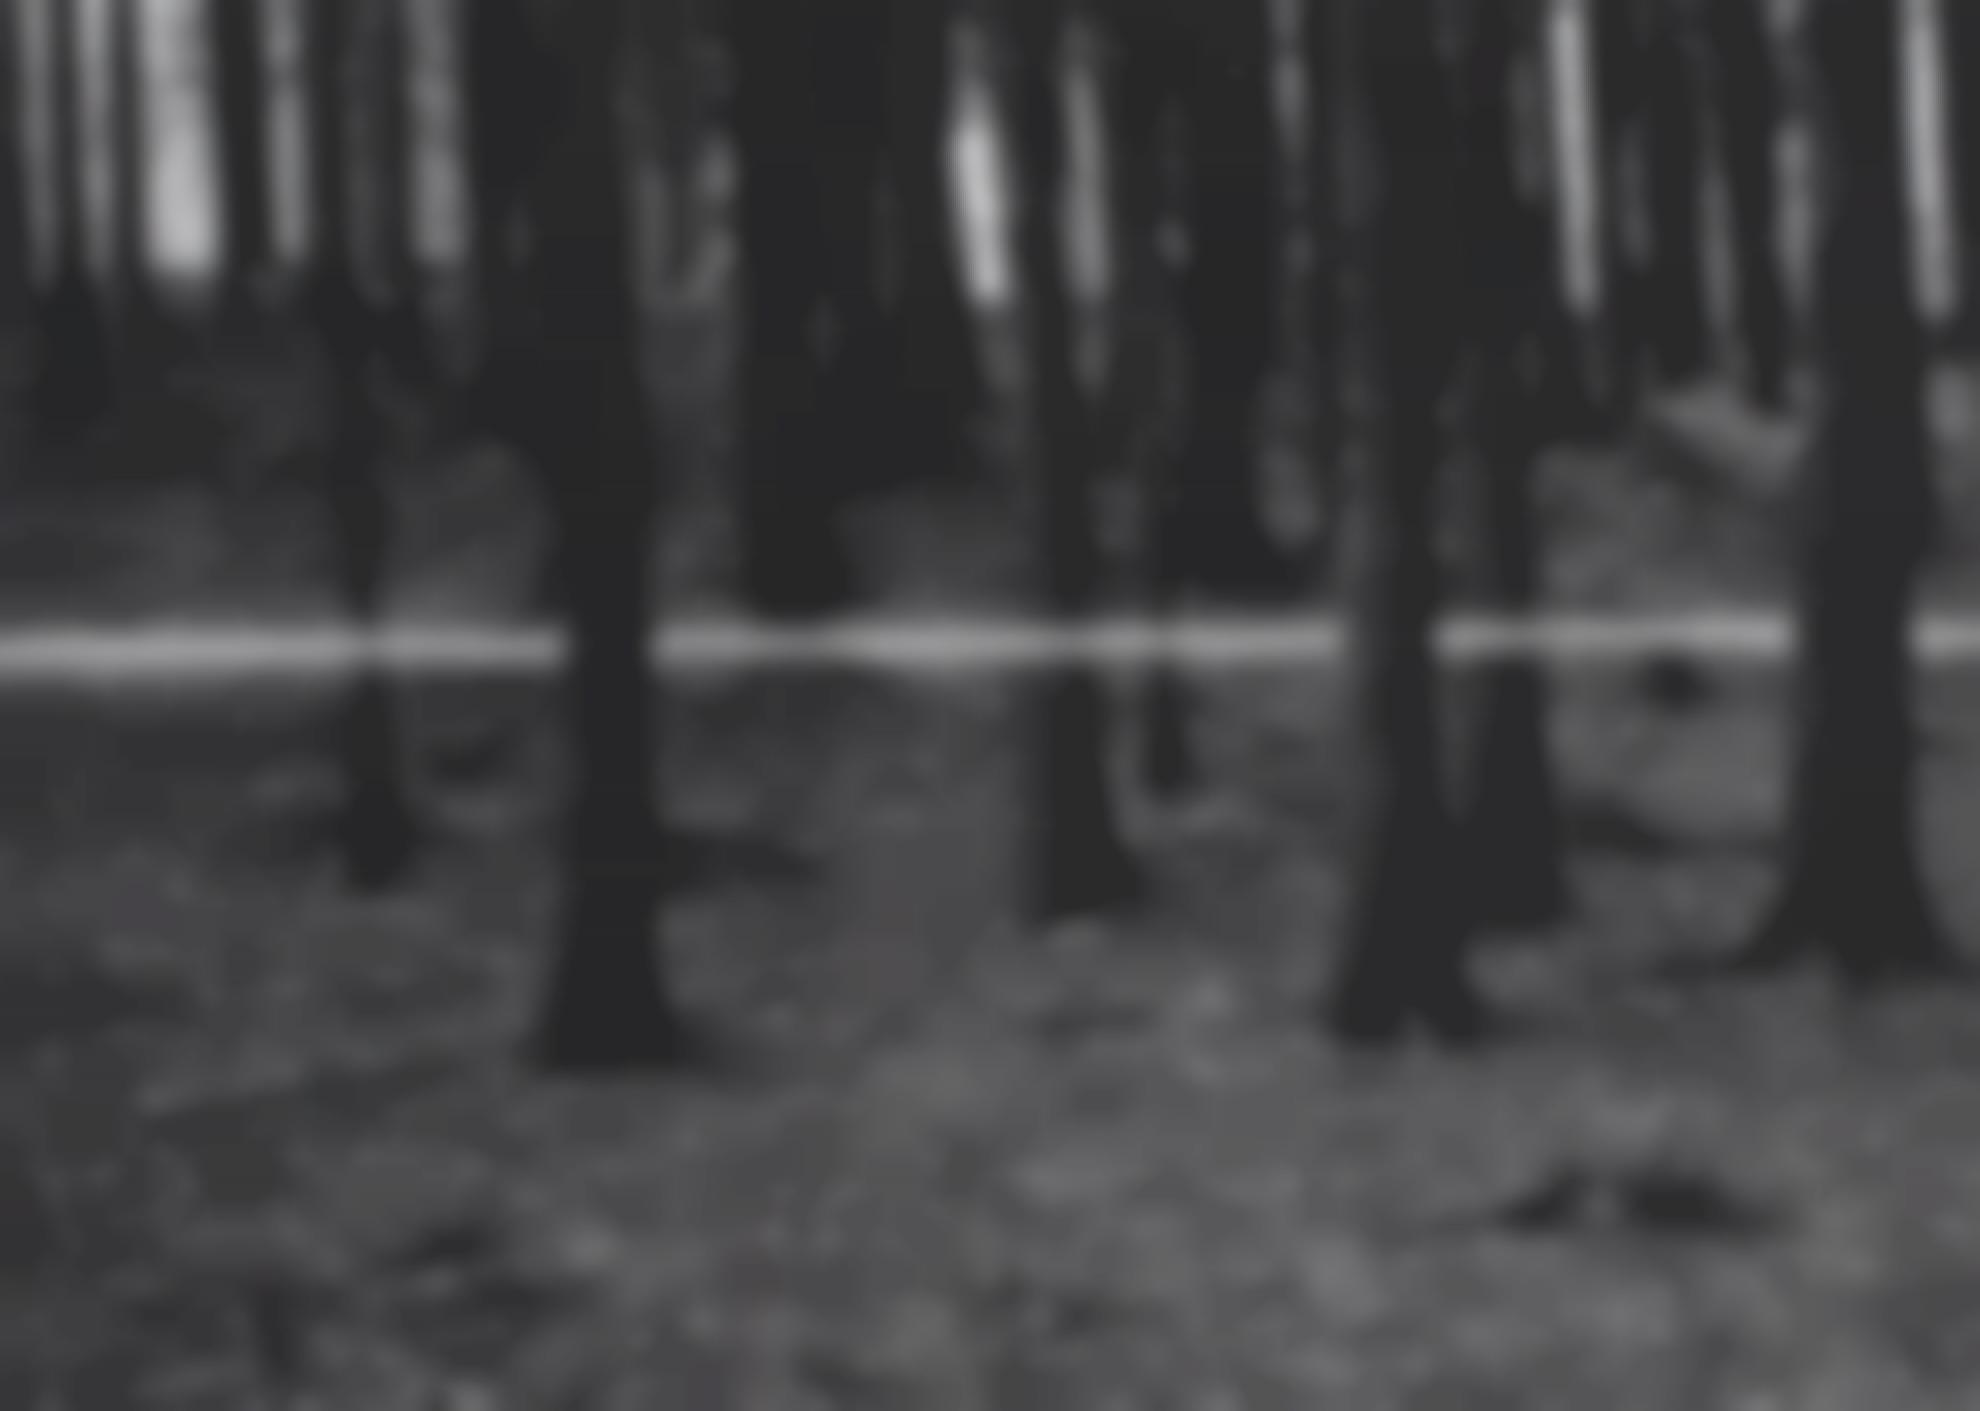 Roman Signer-Large Forest With Bullet-1978